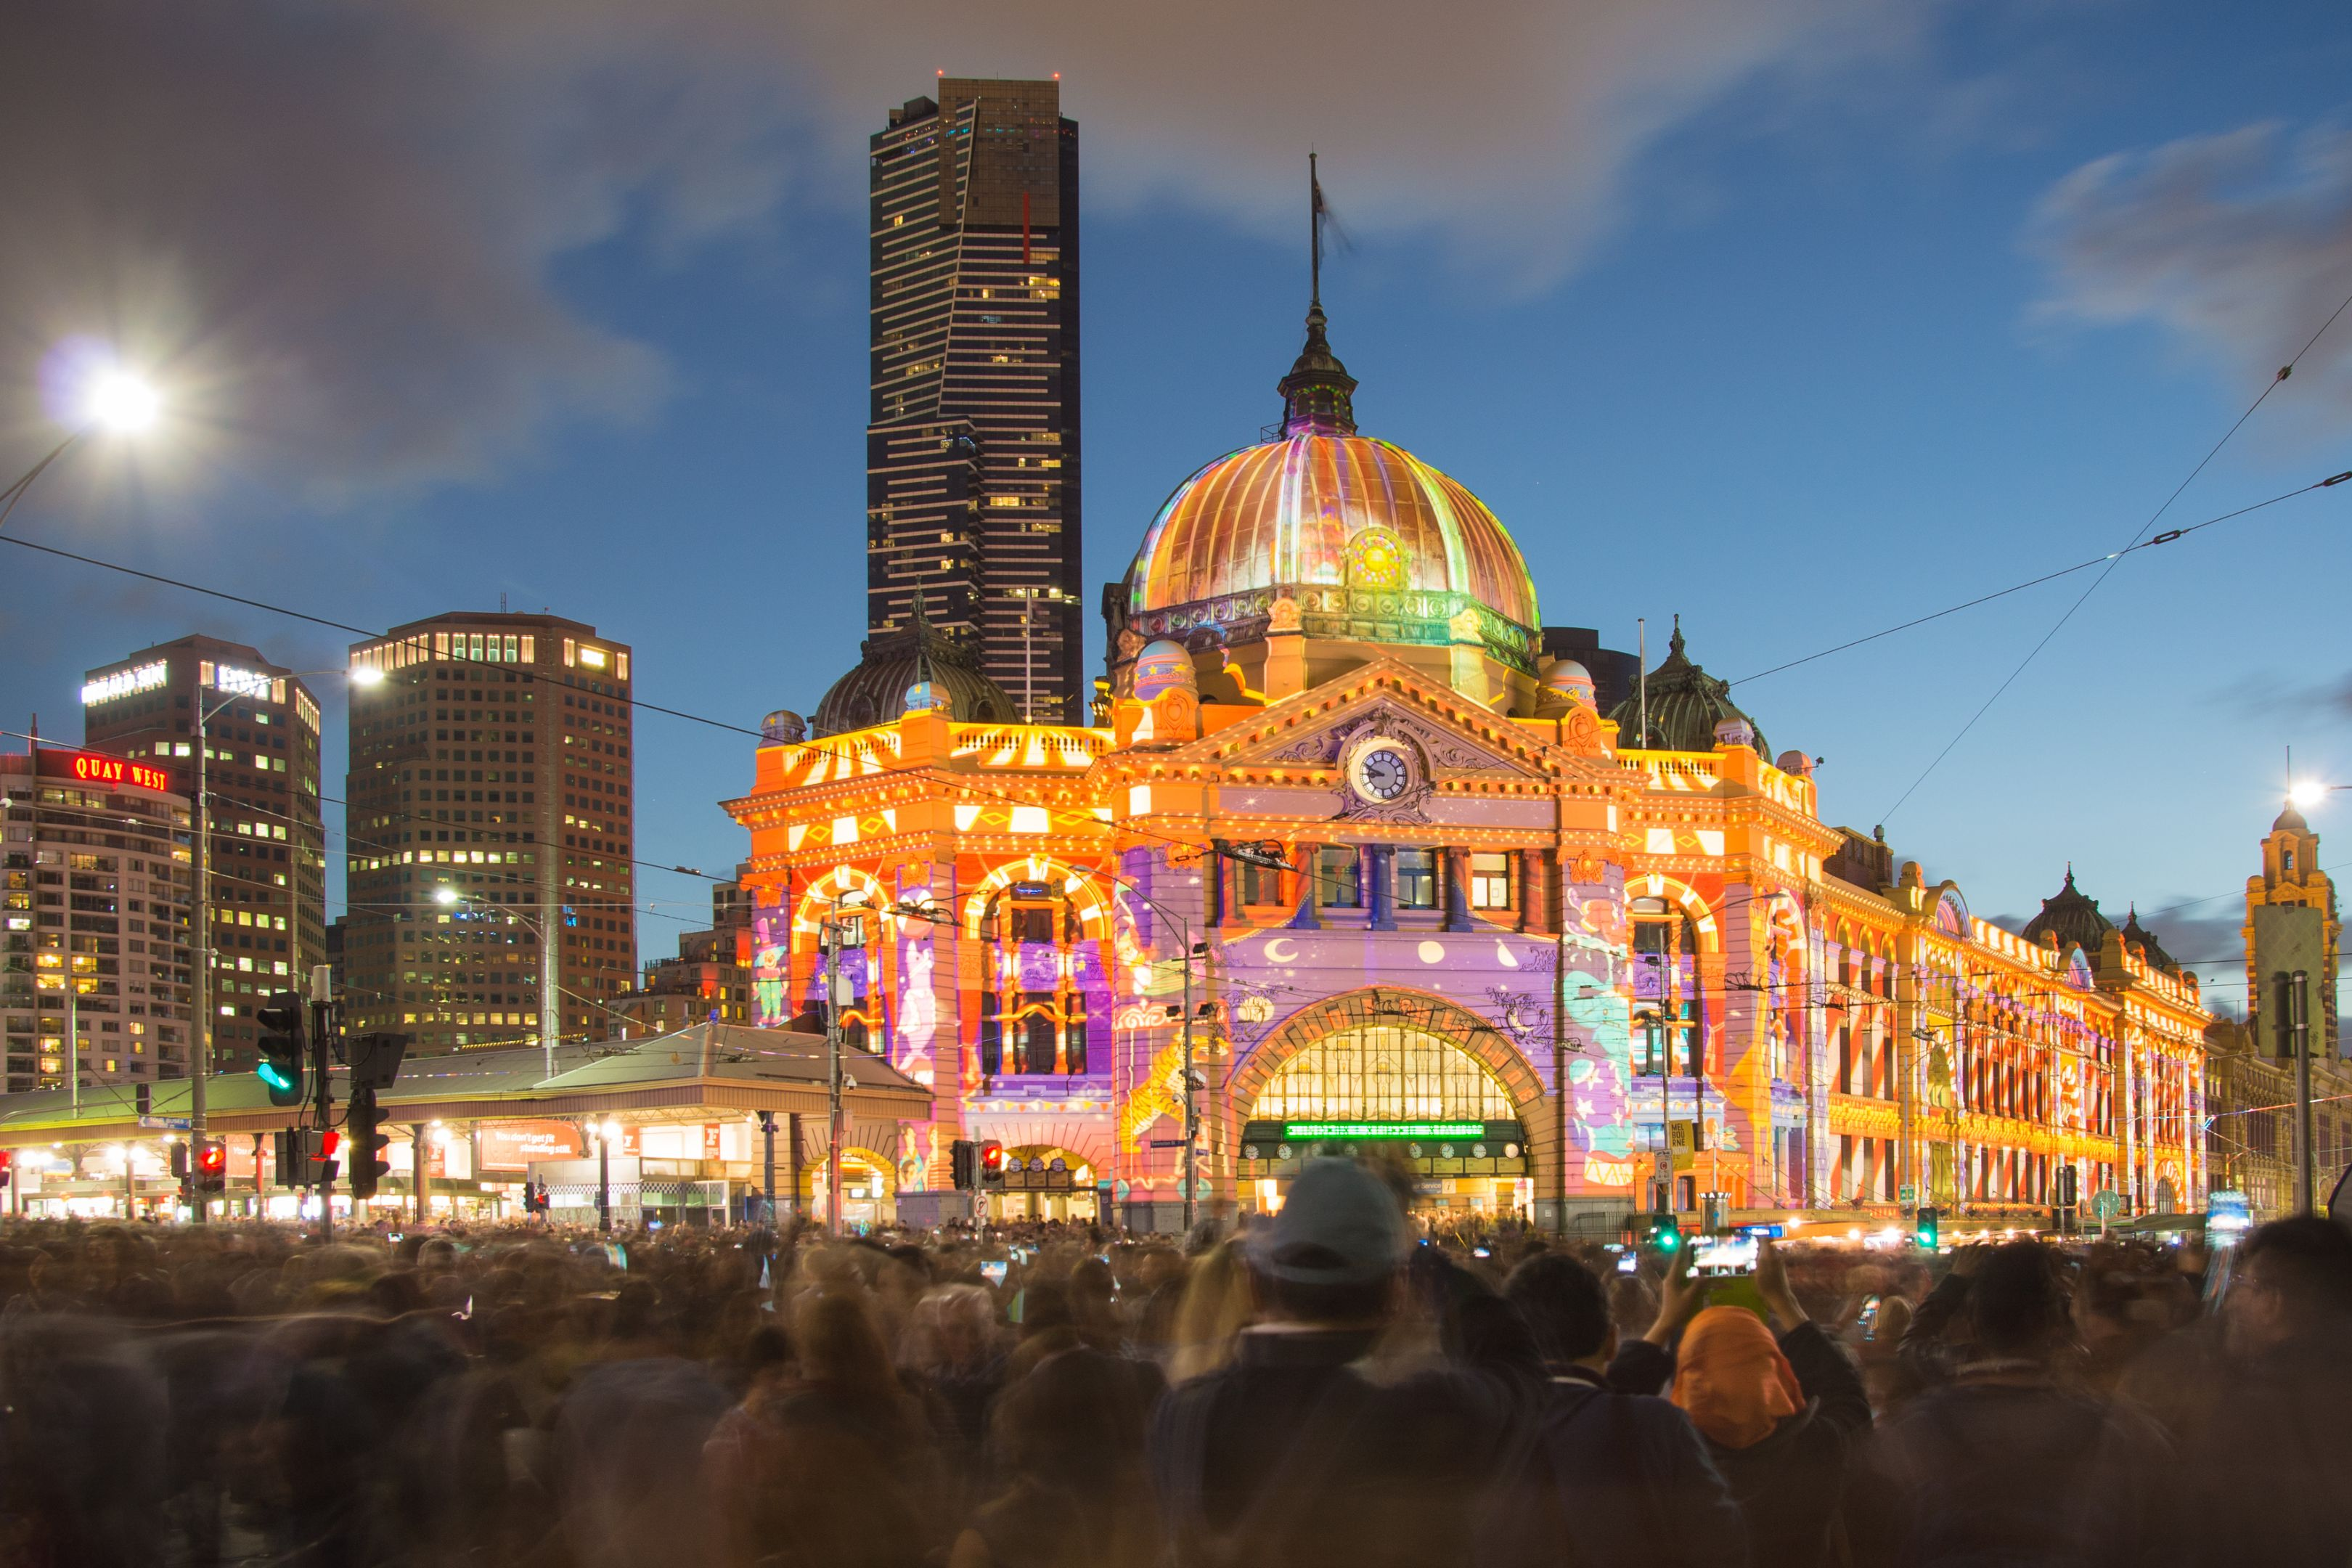 Flinders Street Station in Melbourne during the White Night Festival with large-scale artistic light projection.